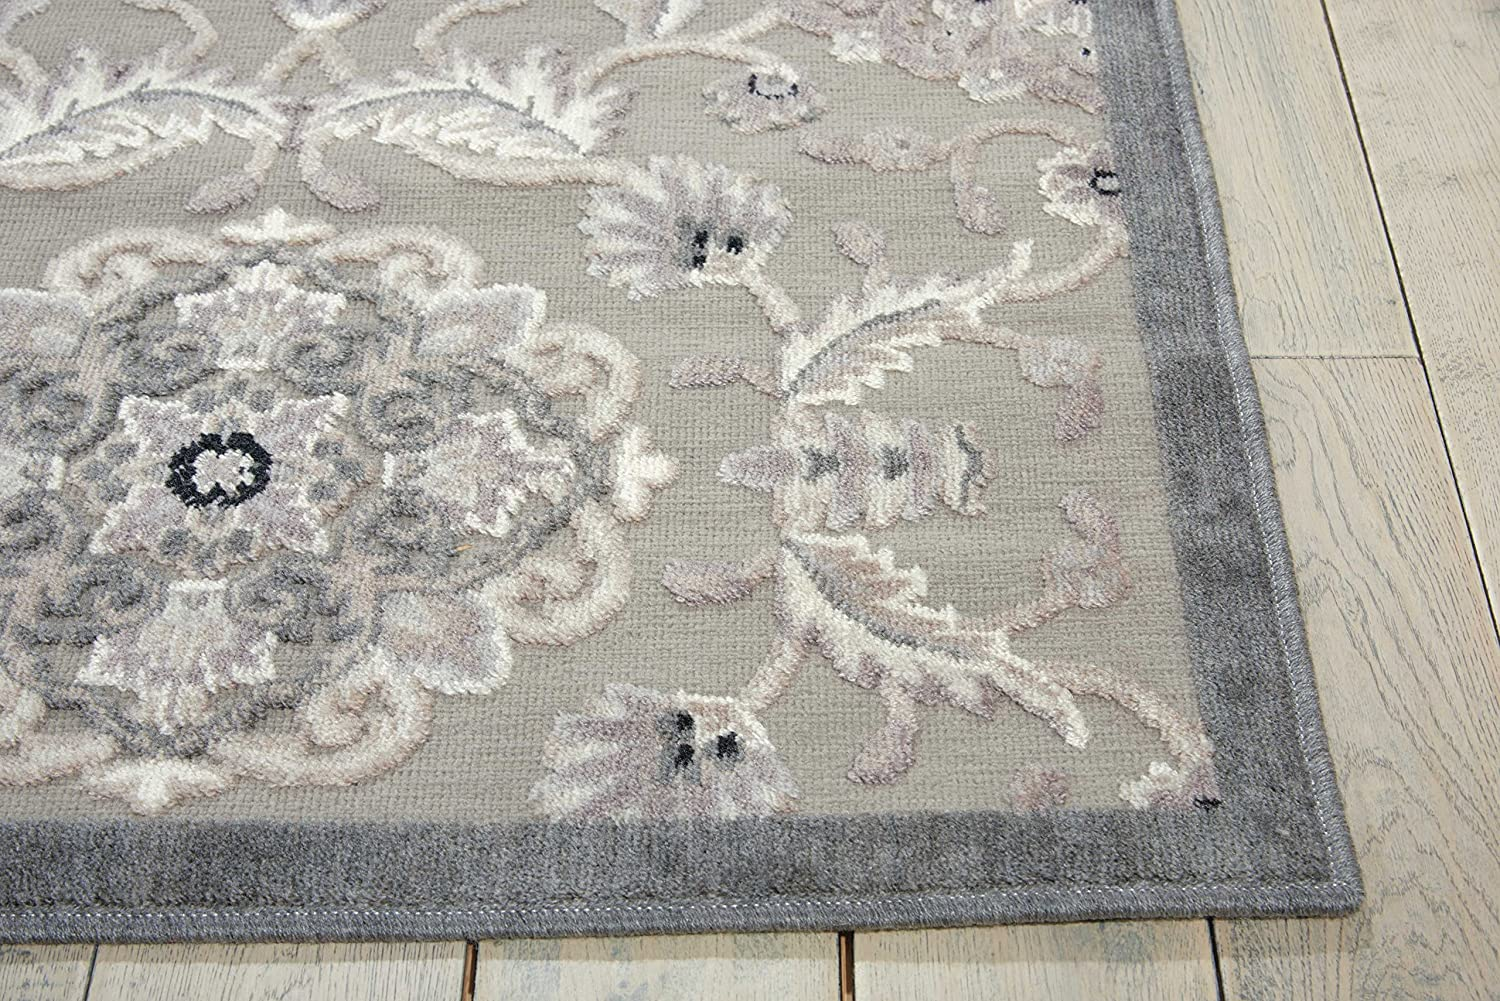 Grey Runner Area Rug 2-Feet 3-Inches by 8-Feet Nourison Graphic Illusions GIL12 23 x 8 2-Feet 3-Inches by 8-Feet 2/'3 x 8/'